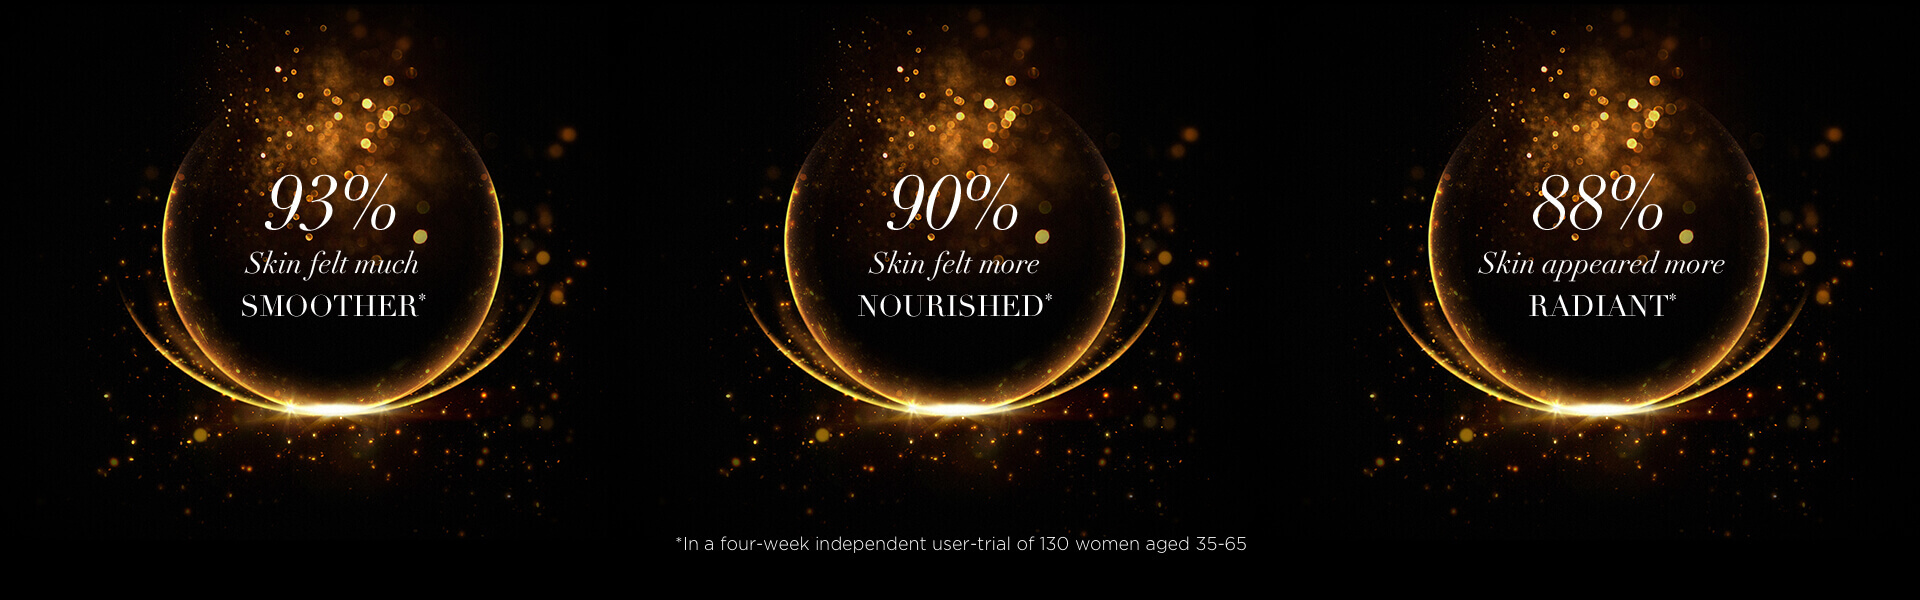 93% skin felt much smoother. 90% skin felt more nourished. 88% skin appeared more radiant. *in a four week independent user-trial of 130 women aged 35-65